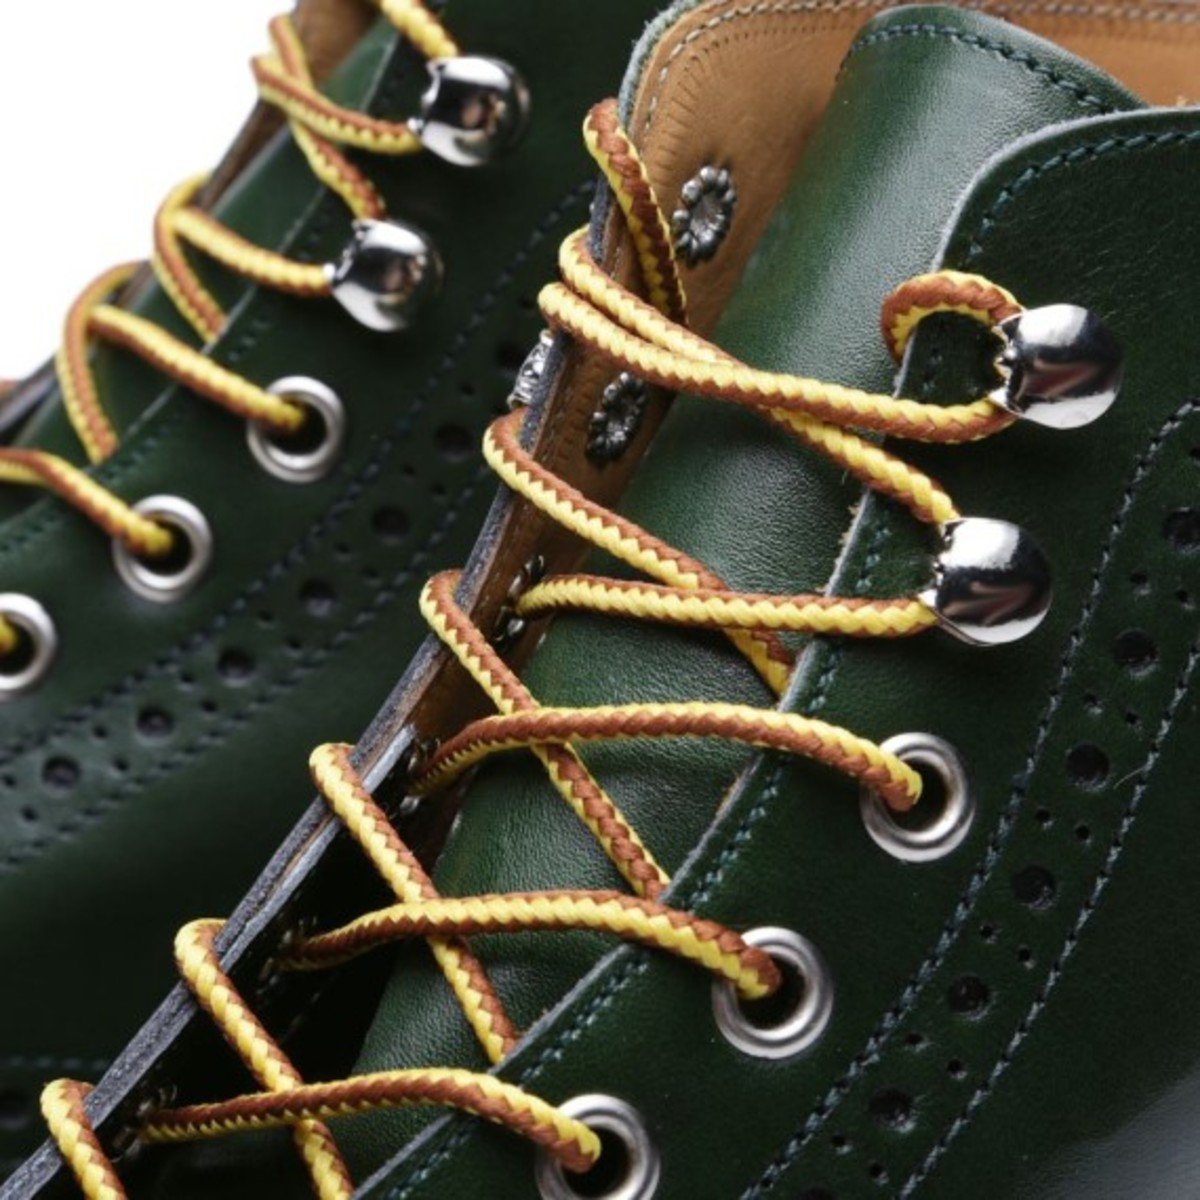 end-trickers-stow-brogue-boot-spring-2014-05